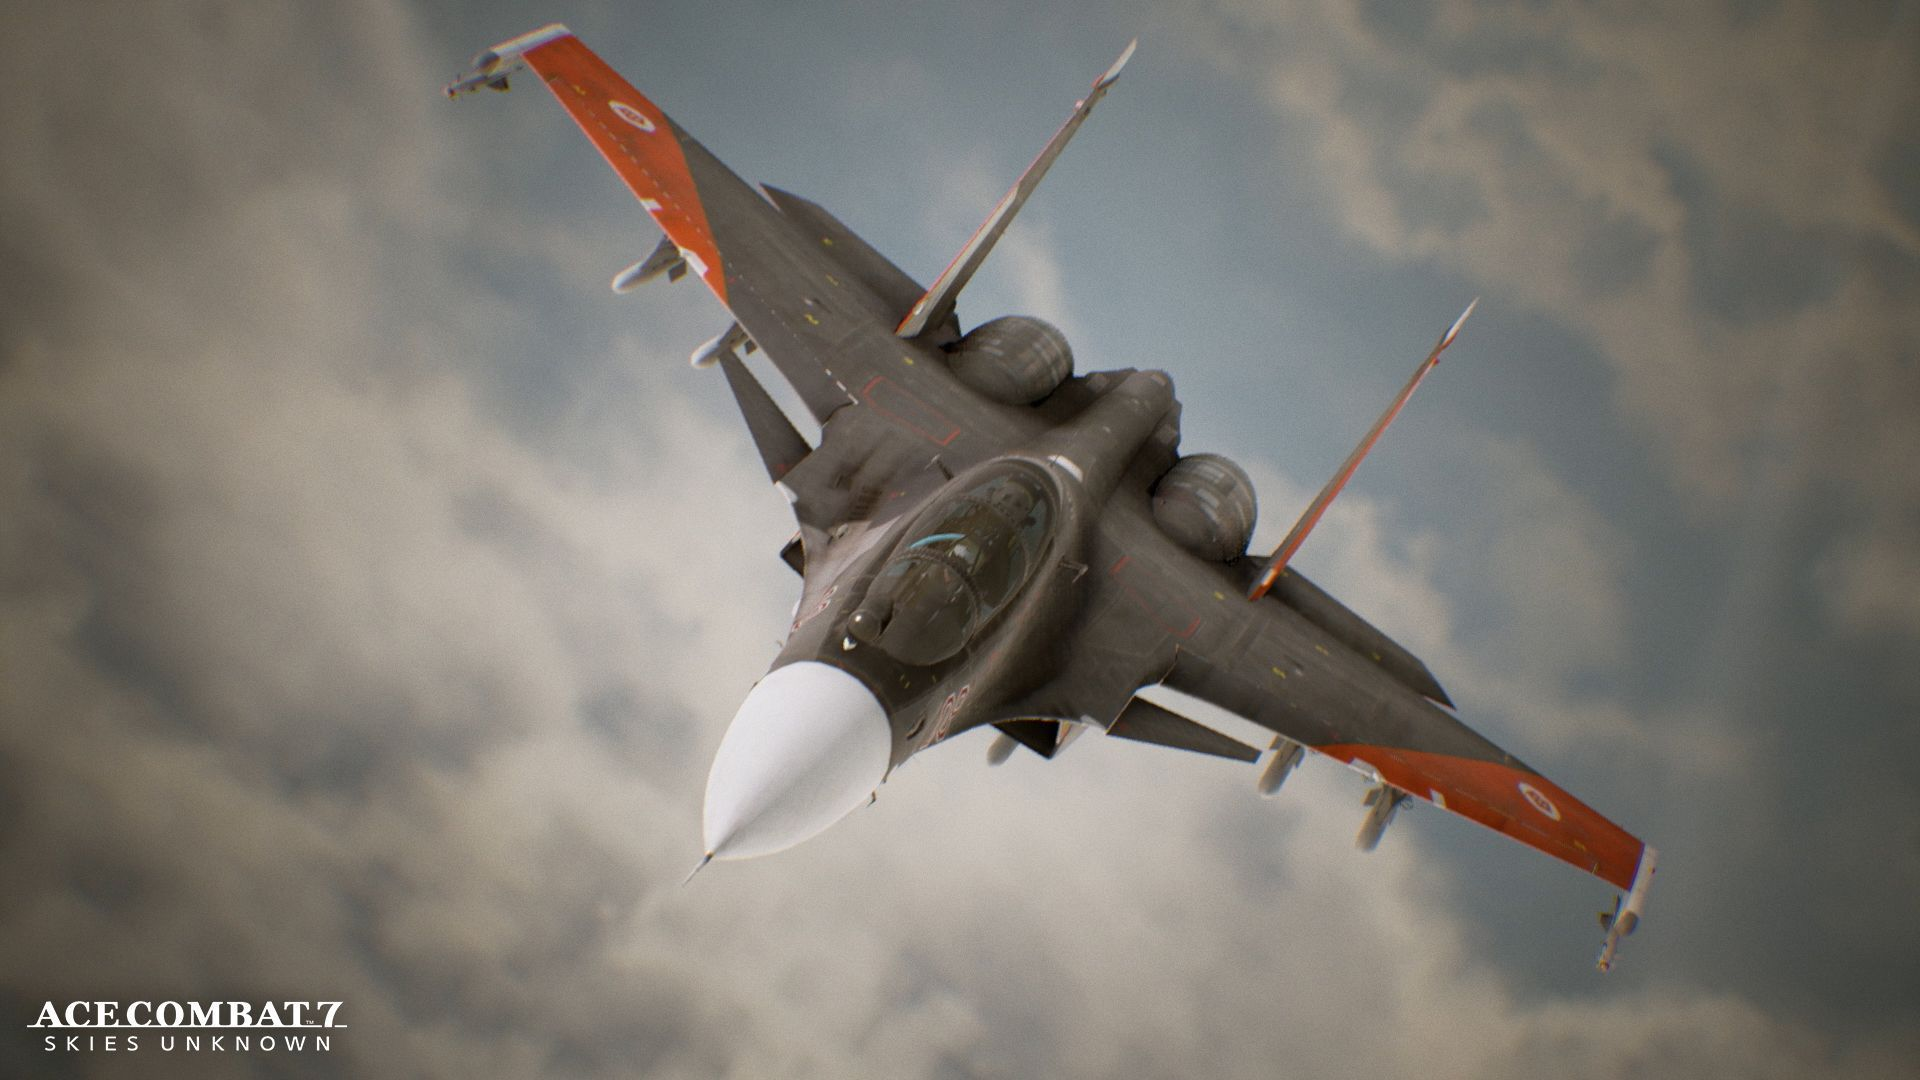 Ace Combat 7 Skies Unknown Collection